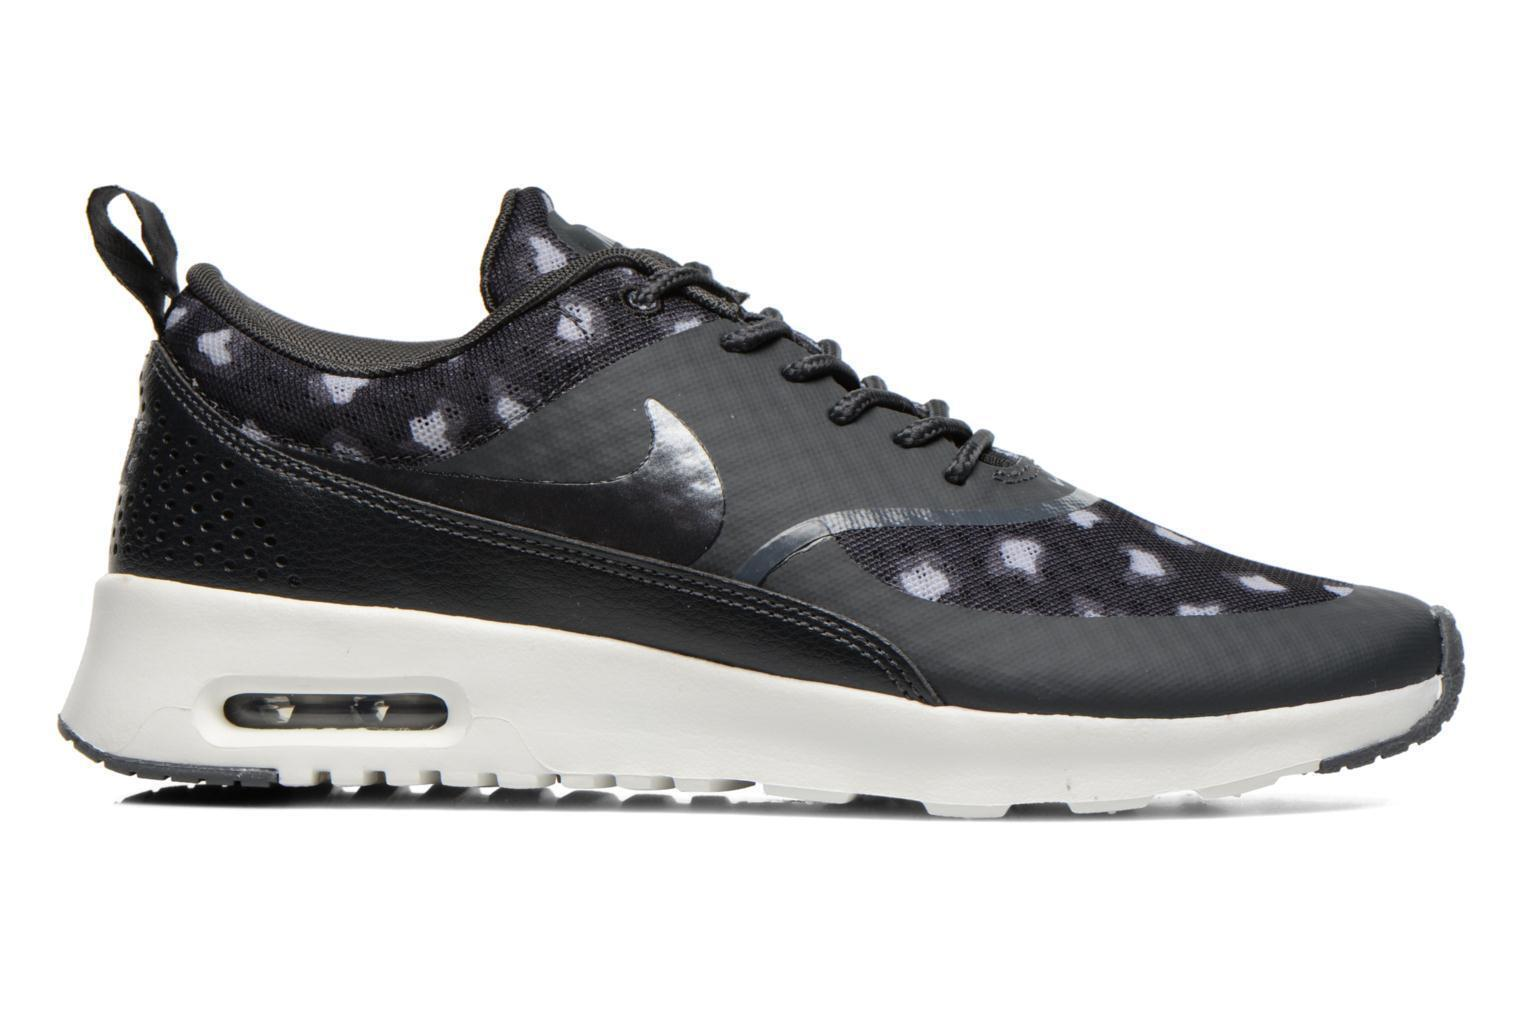 Nike Womens Air Max Thea Print shoes Trainers Sneakers Black 3 UK